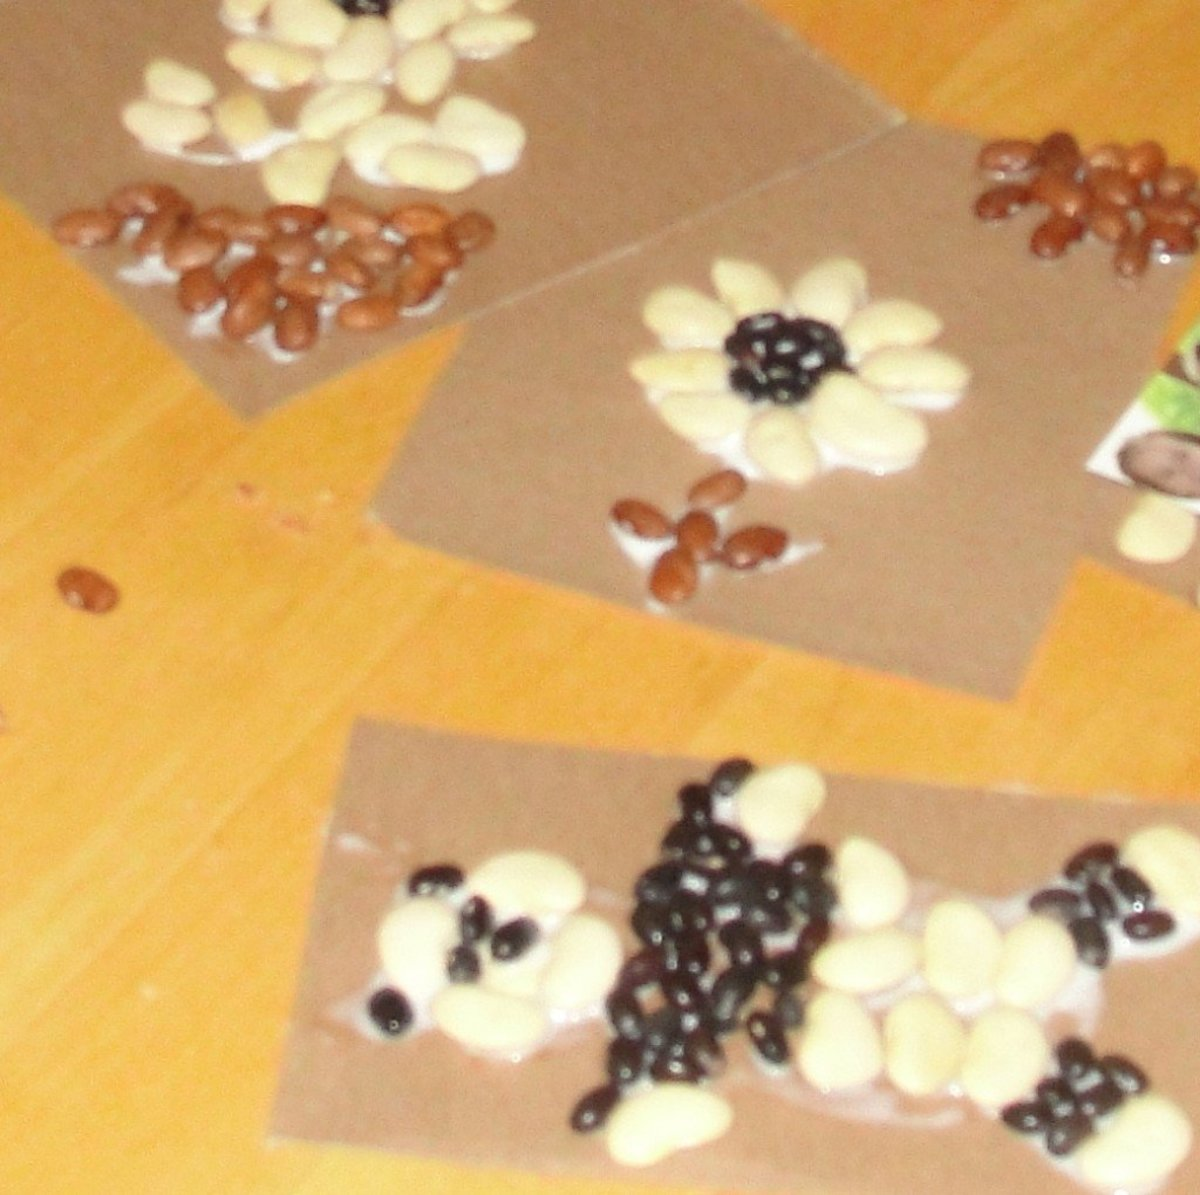 Making seed mosaics was one of the activities we did this week while learning about seed plants from the above link:  Science Morning Basket & Activities: Seed Plants.